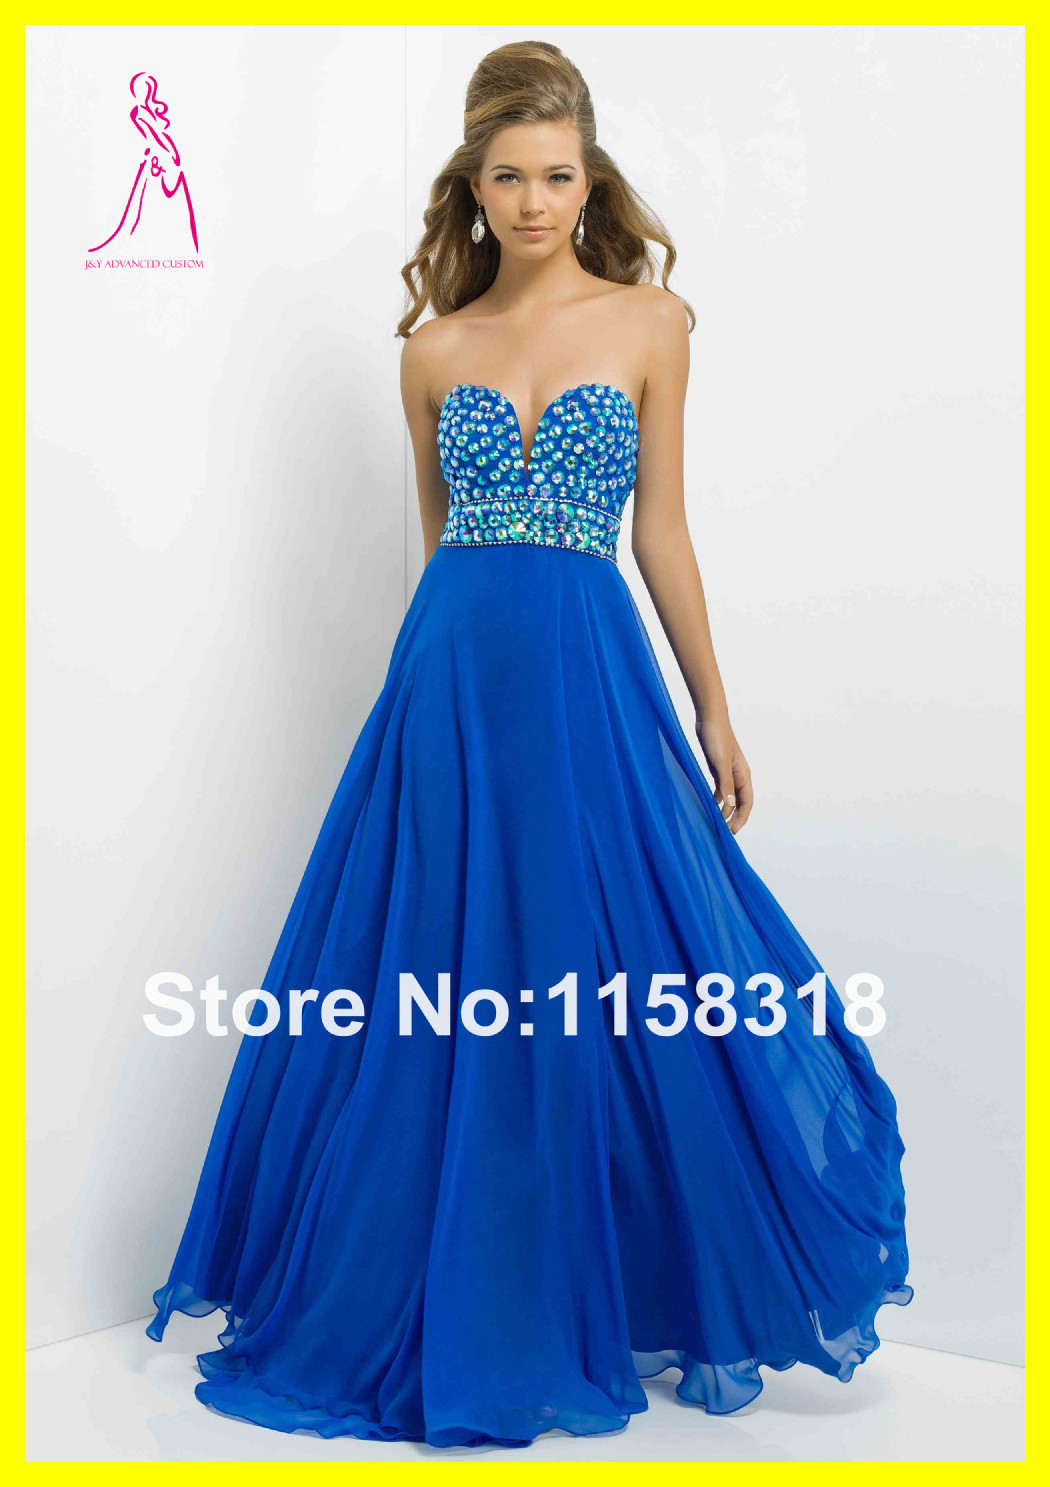 Prom Dress Stores In Michigan